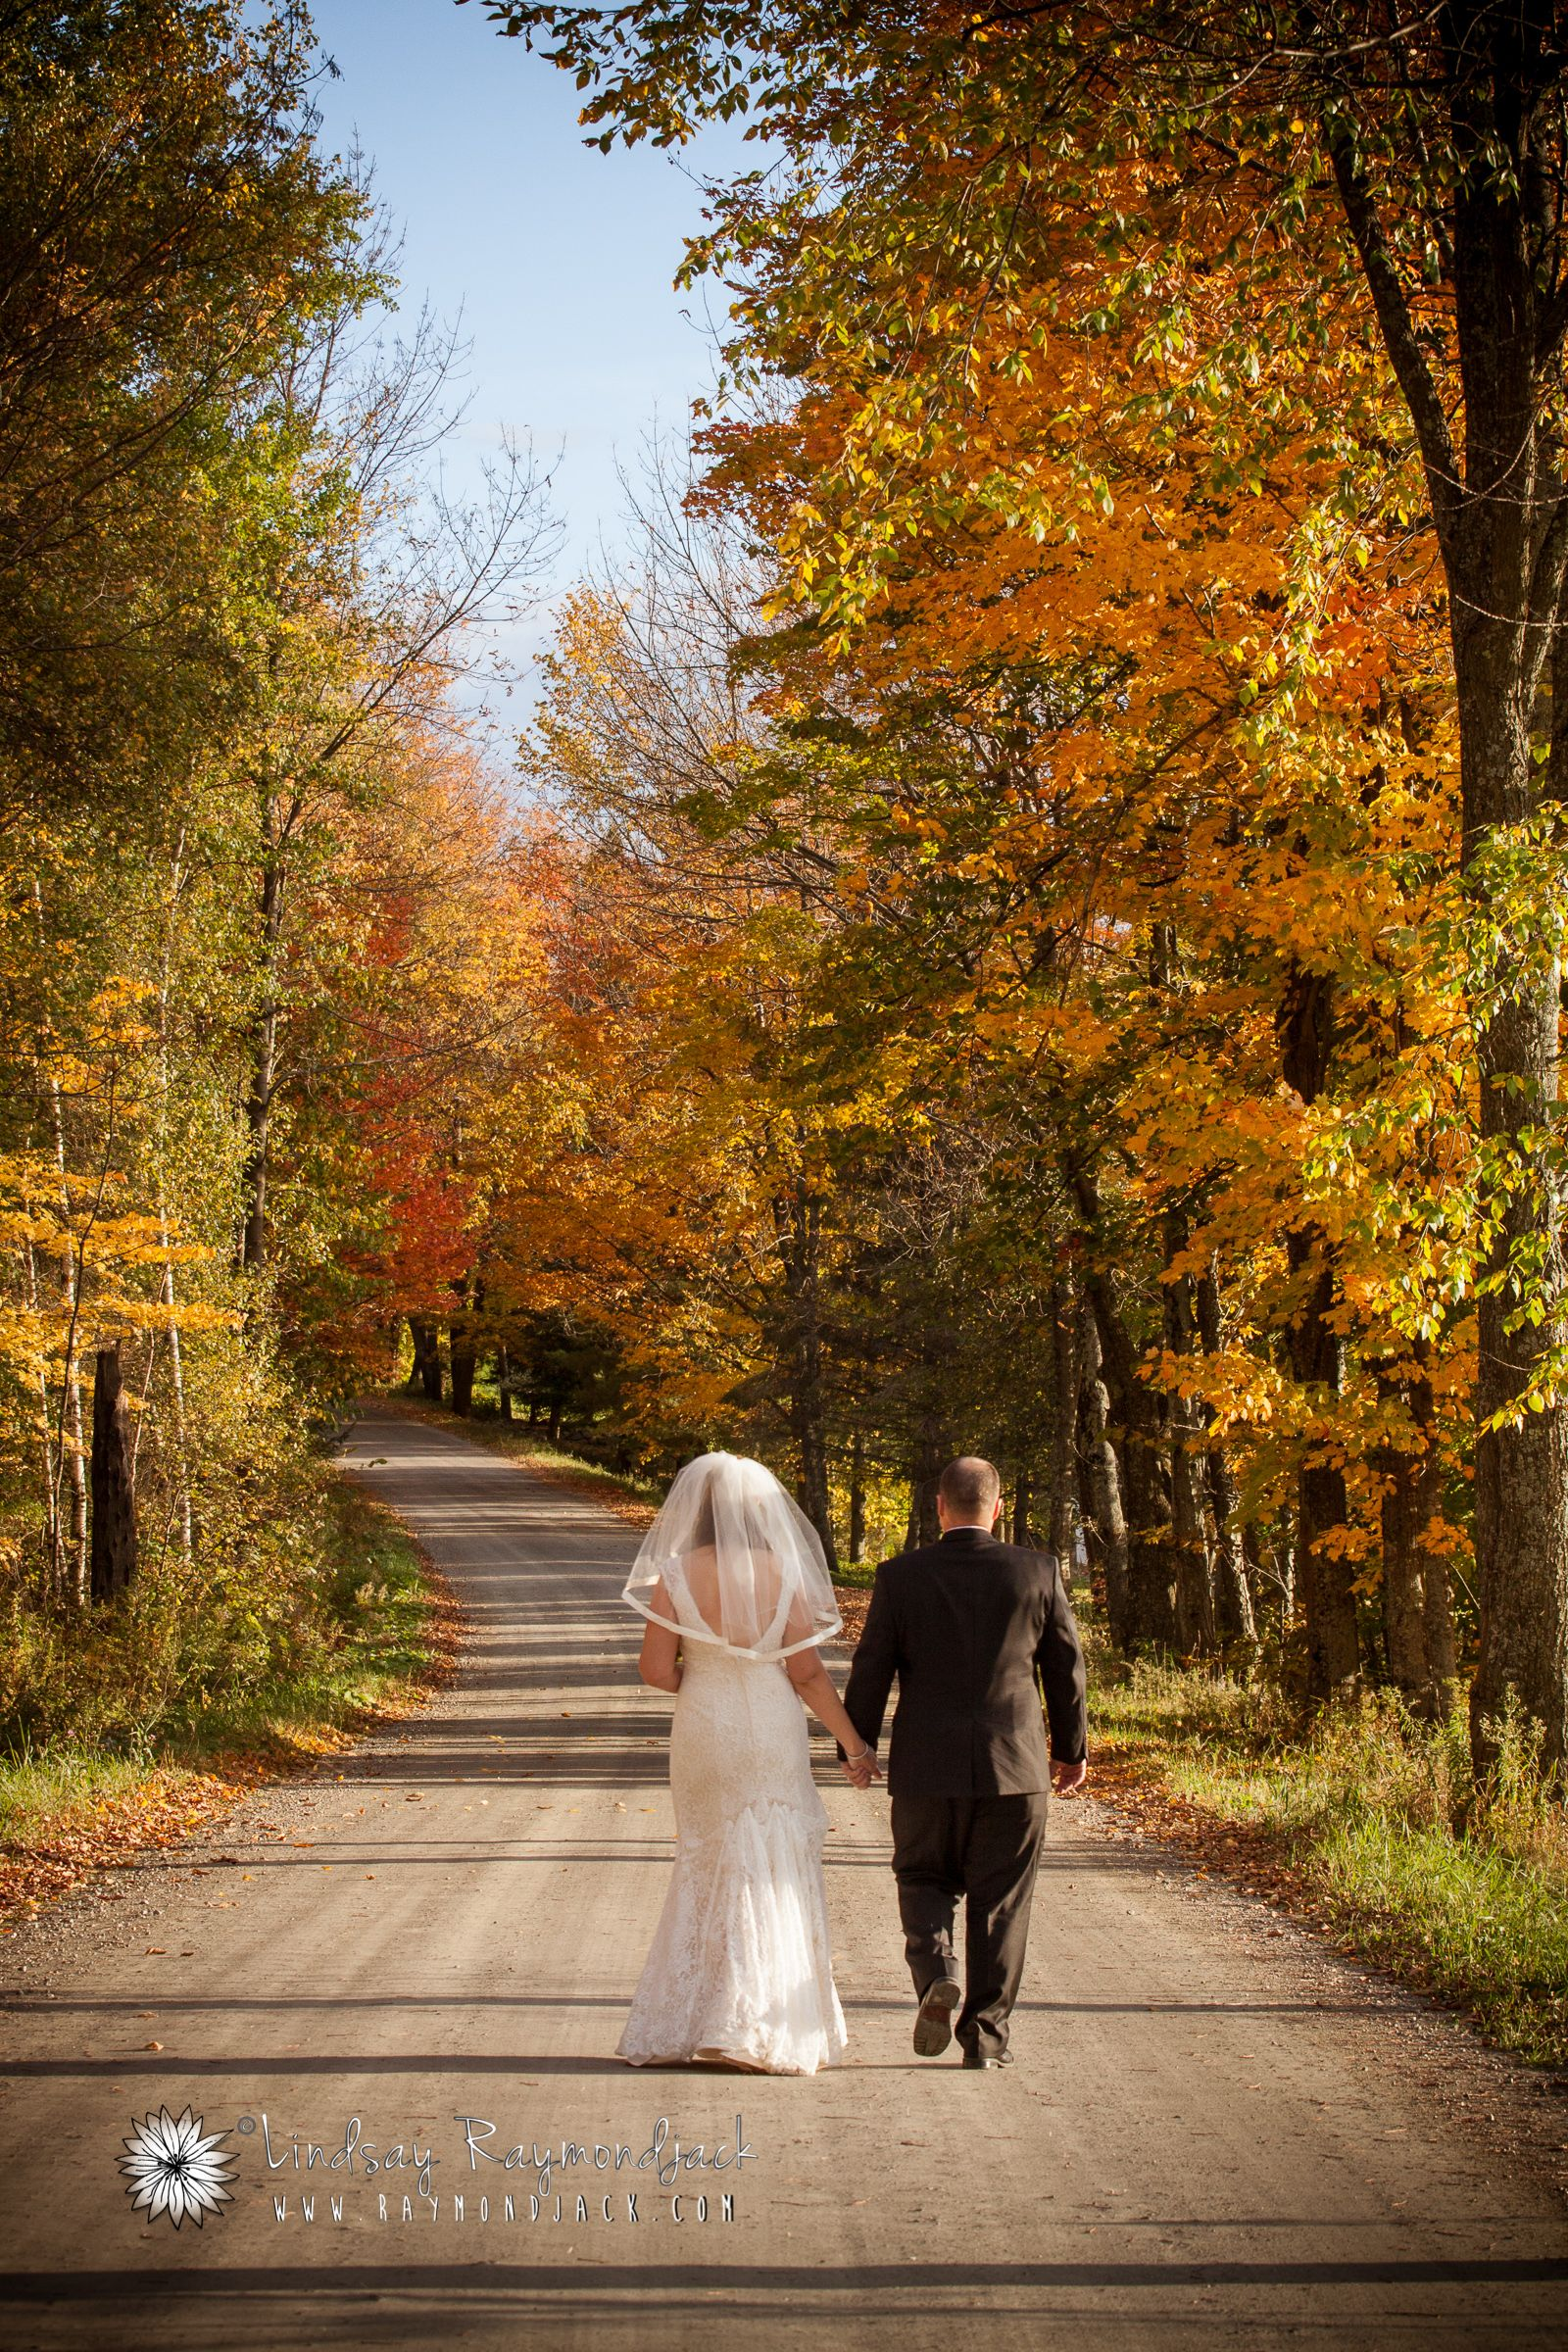 Fall Foliage wedding at B&B in Montgomery Center, Vermont ...